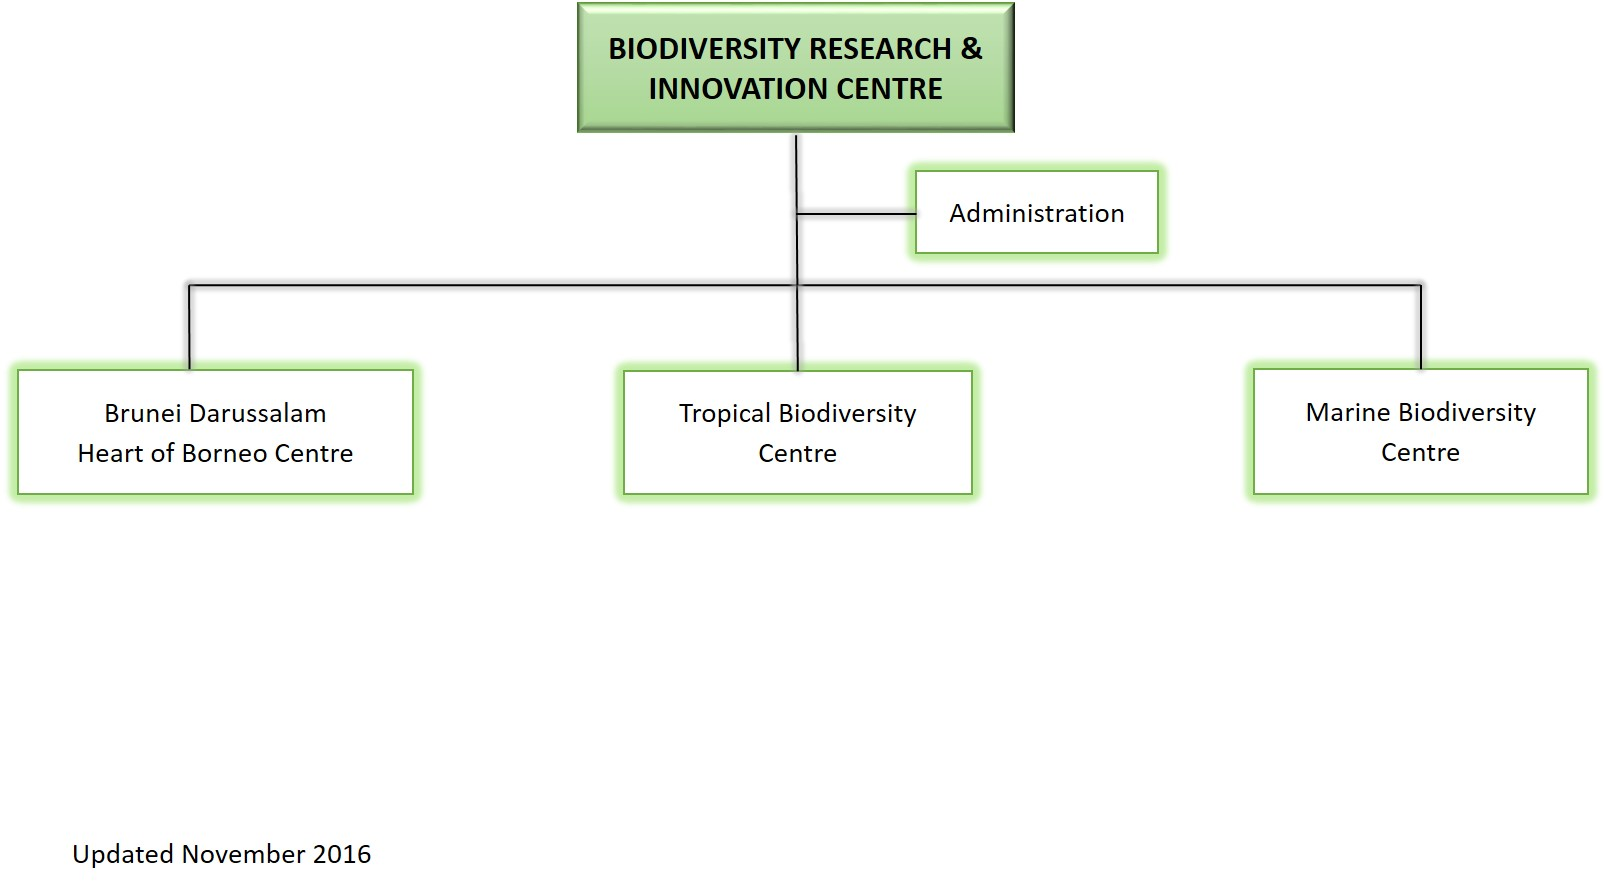 Ministry of Primary Resources and Tourism - Biodiversity